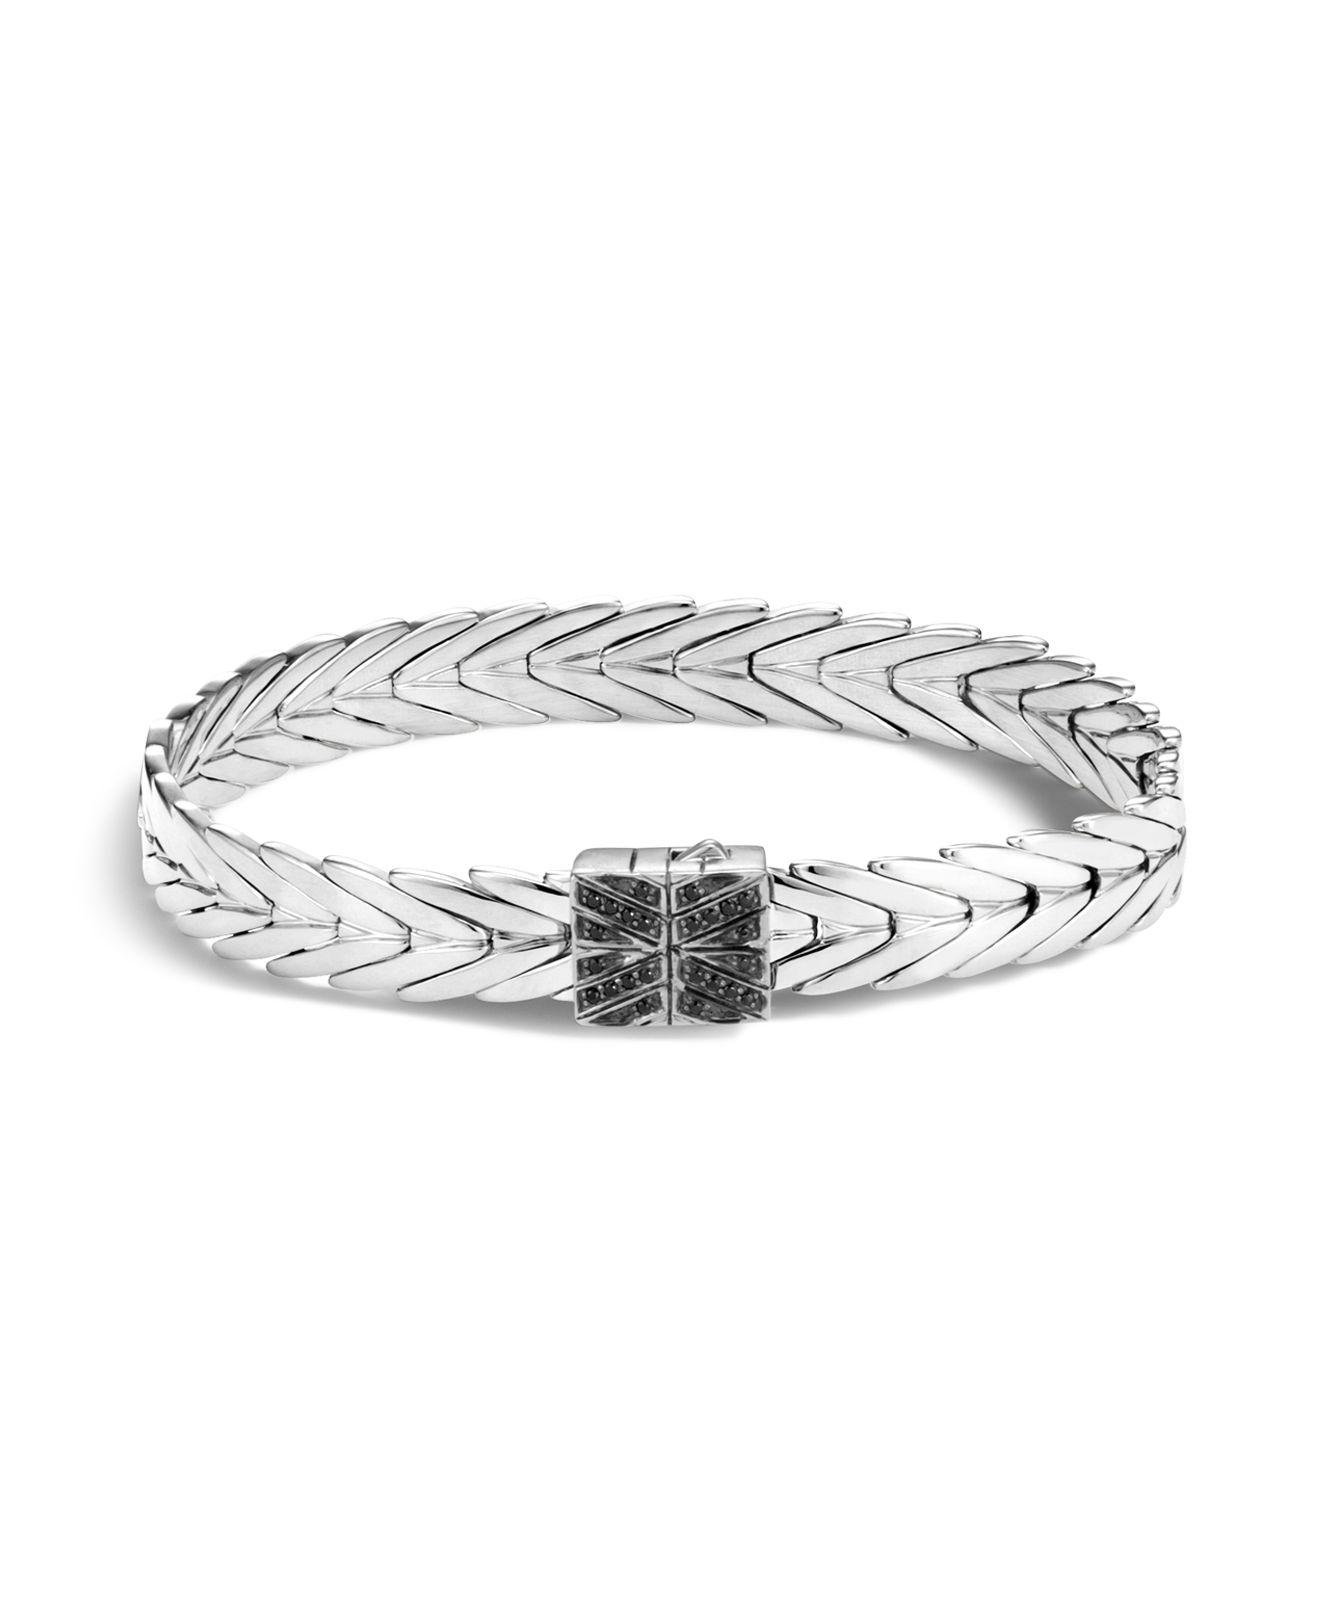 John Hardy Hinged Bangle In Silver With Black Spinel S Black spinel XyJuk8q